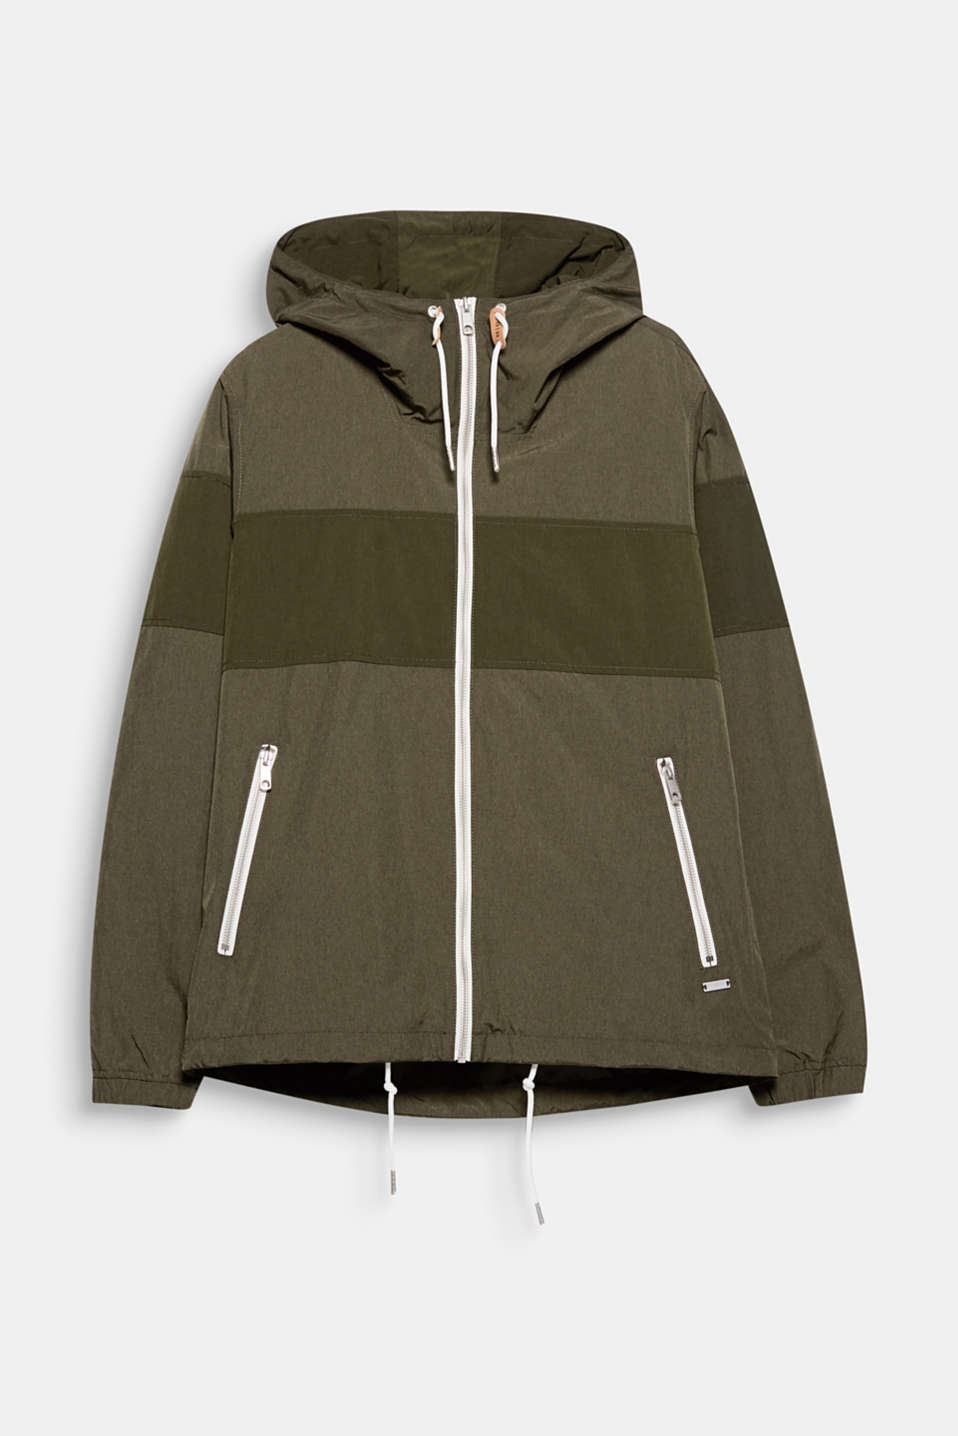 An essential outwear piece that should not be missing from any wardrobe: sporty light jacket with a hood.